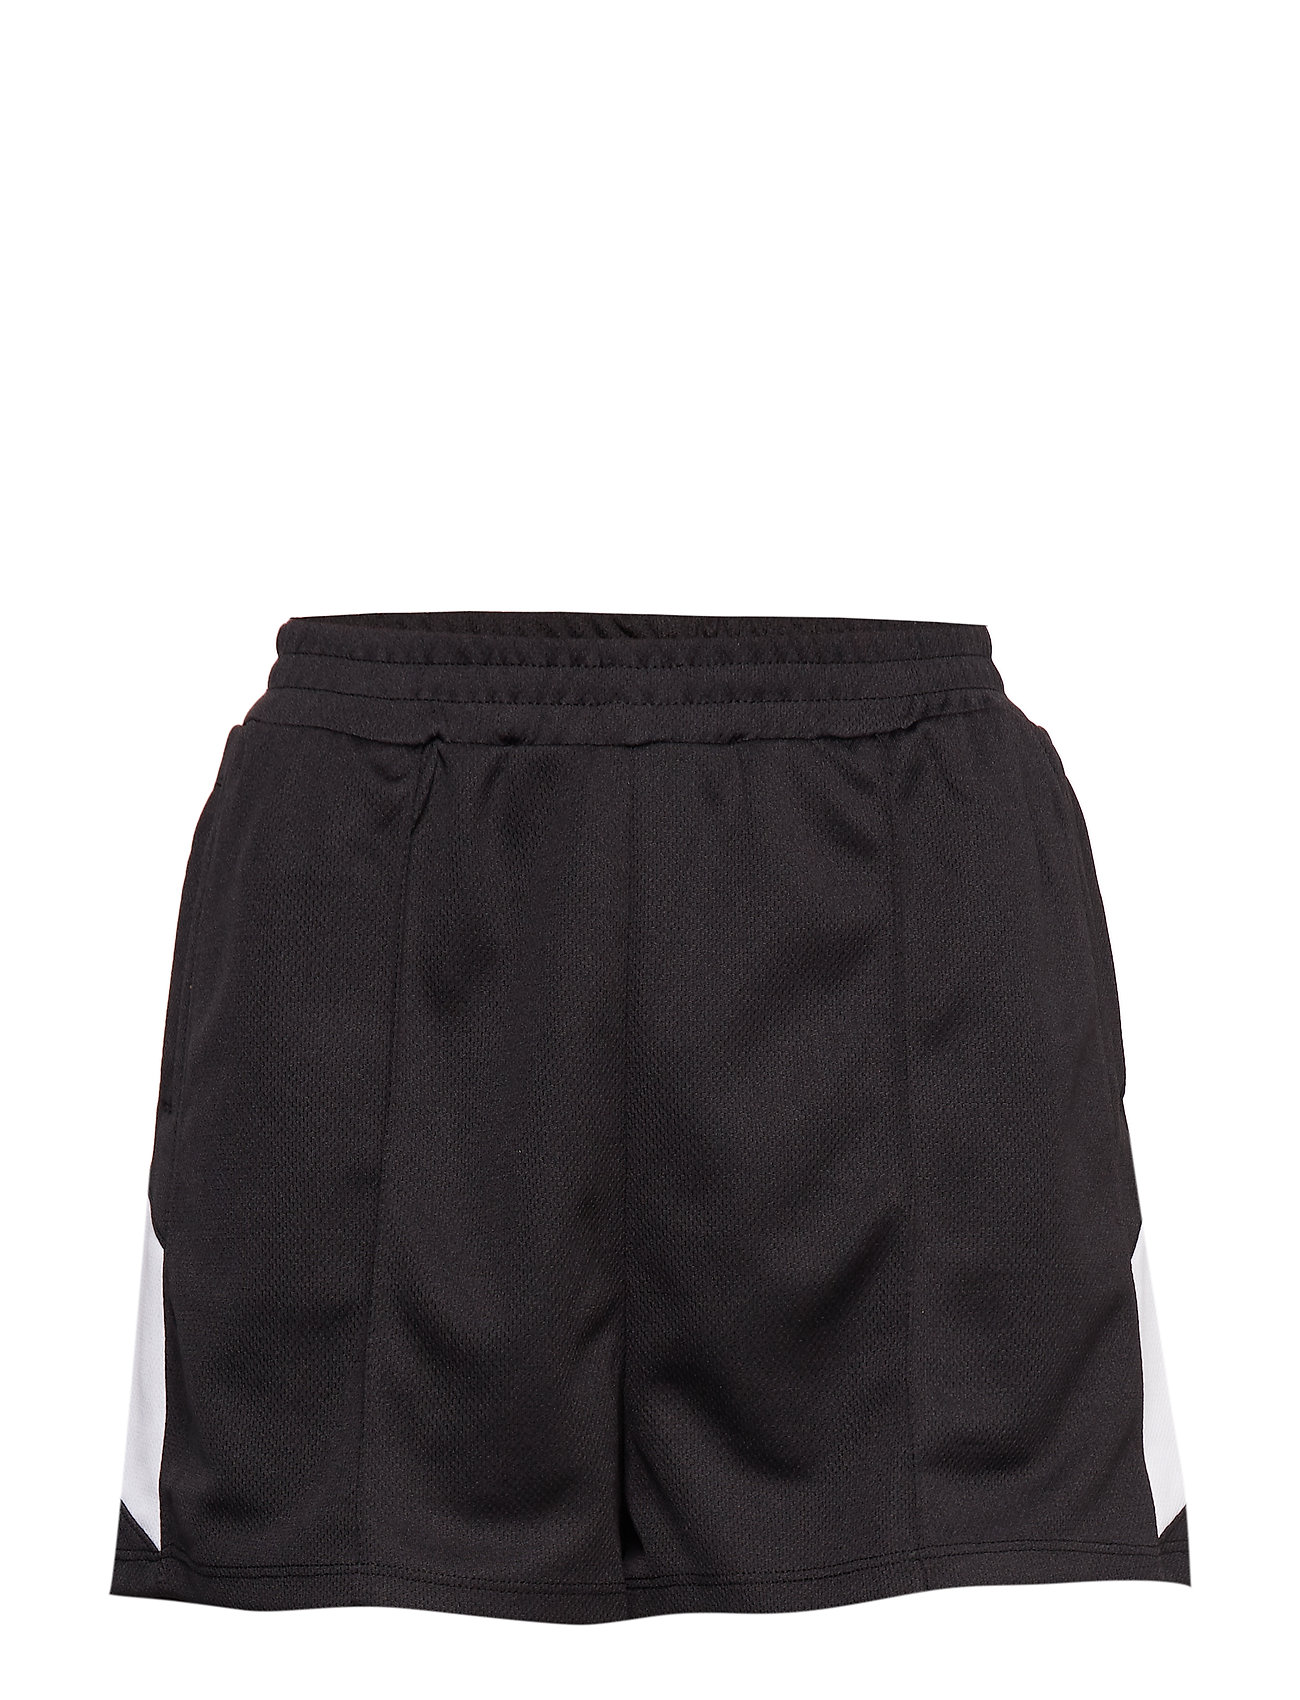 Ivyrevel High Waist Side Panel Shorts Shorts